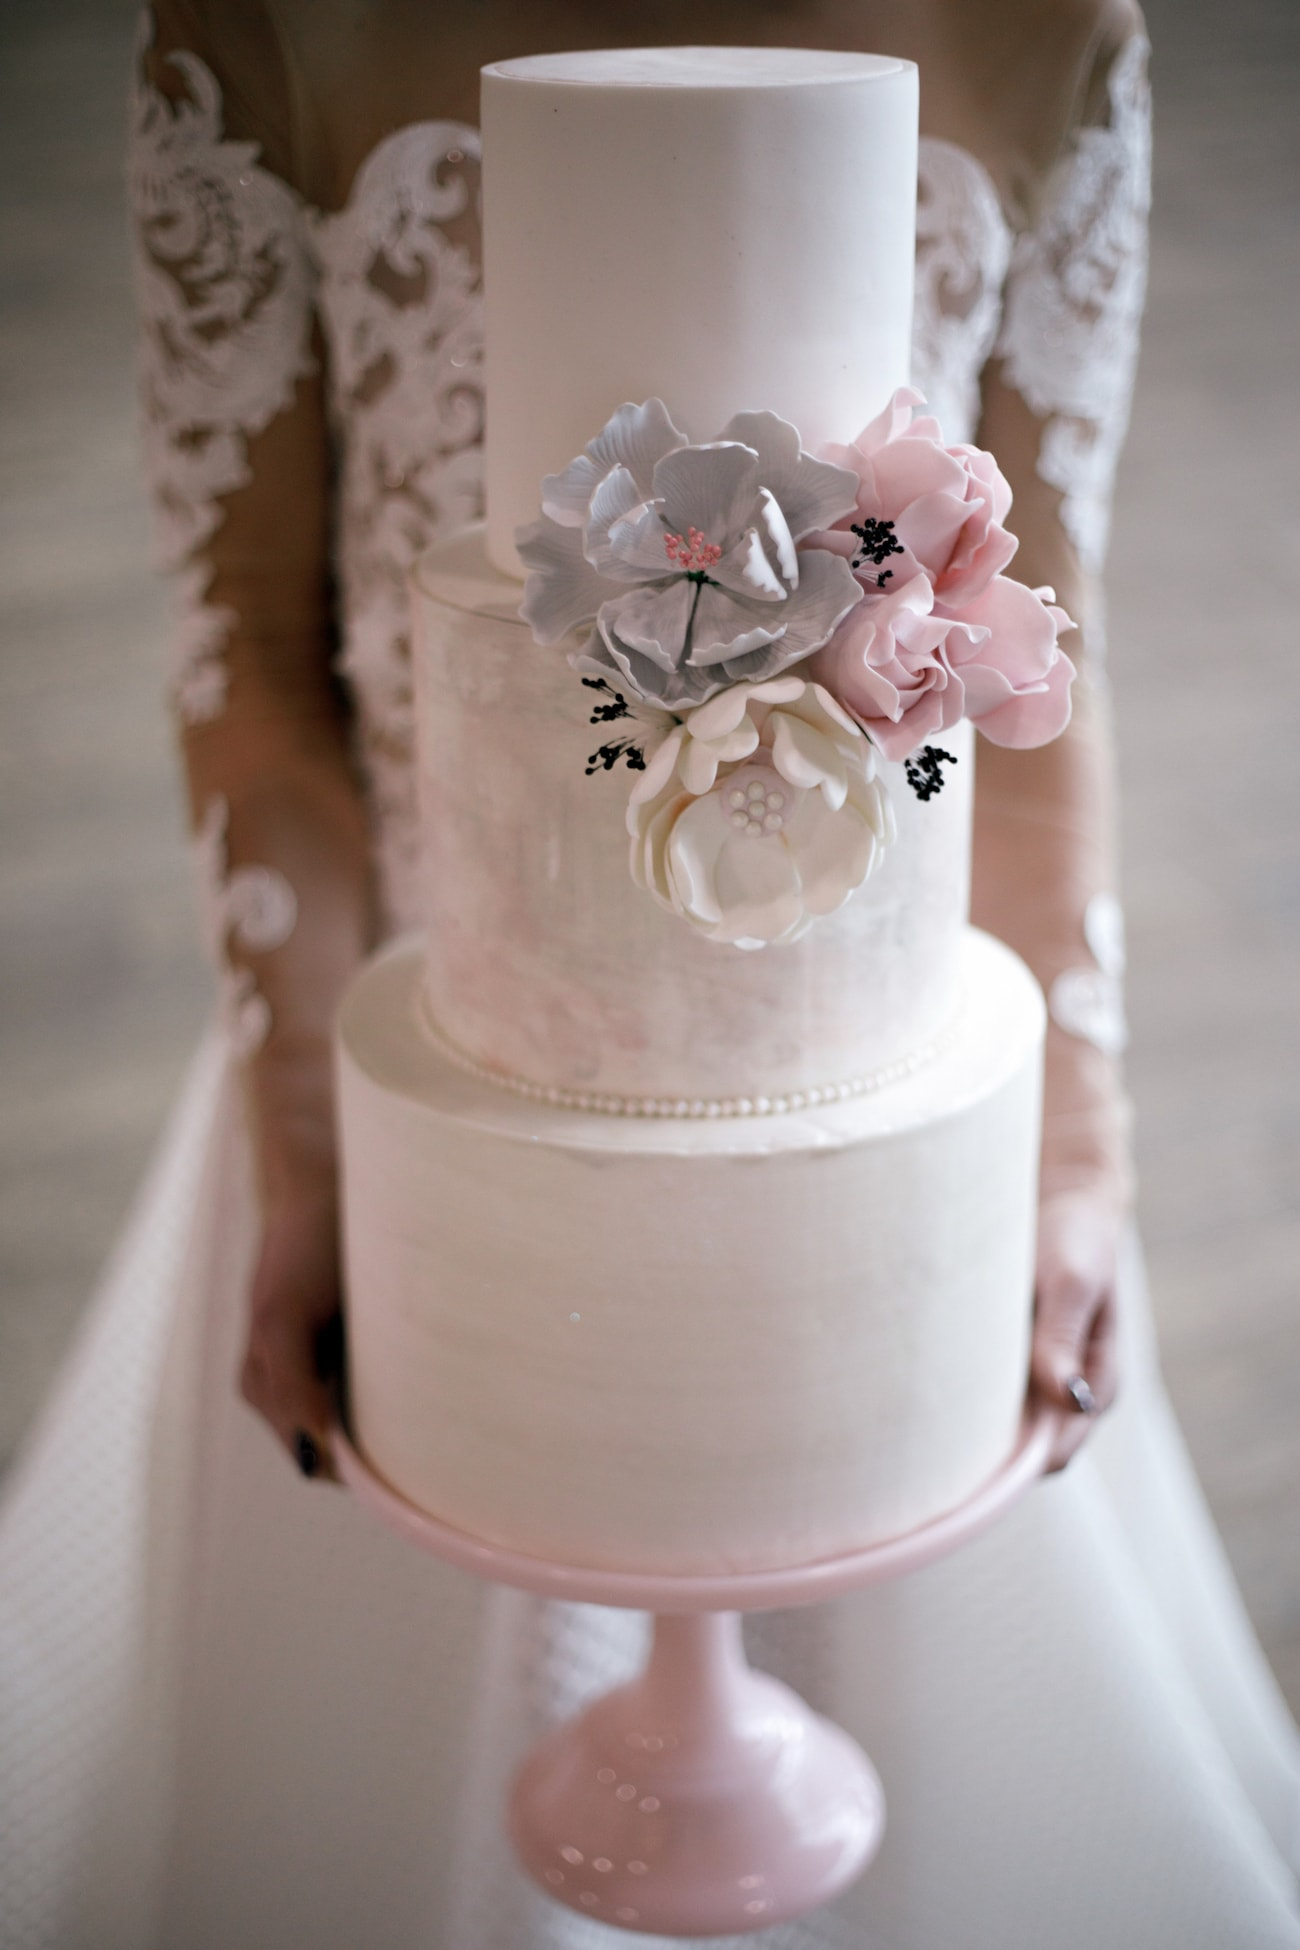 Pastel Wedding Cake with Sugar Flowers | Credit: Jessica Notelo (30)